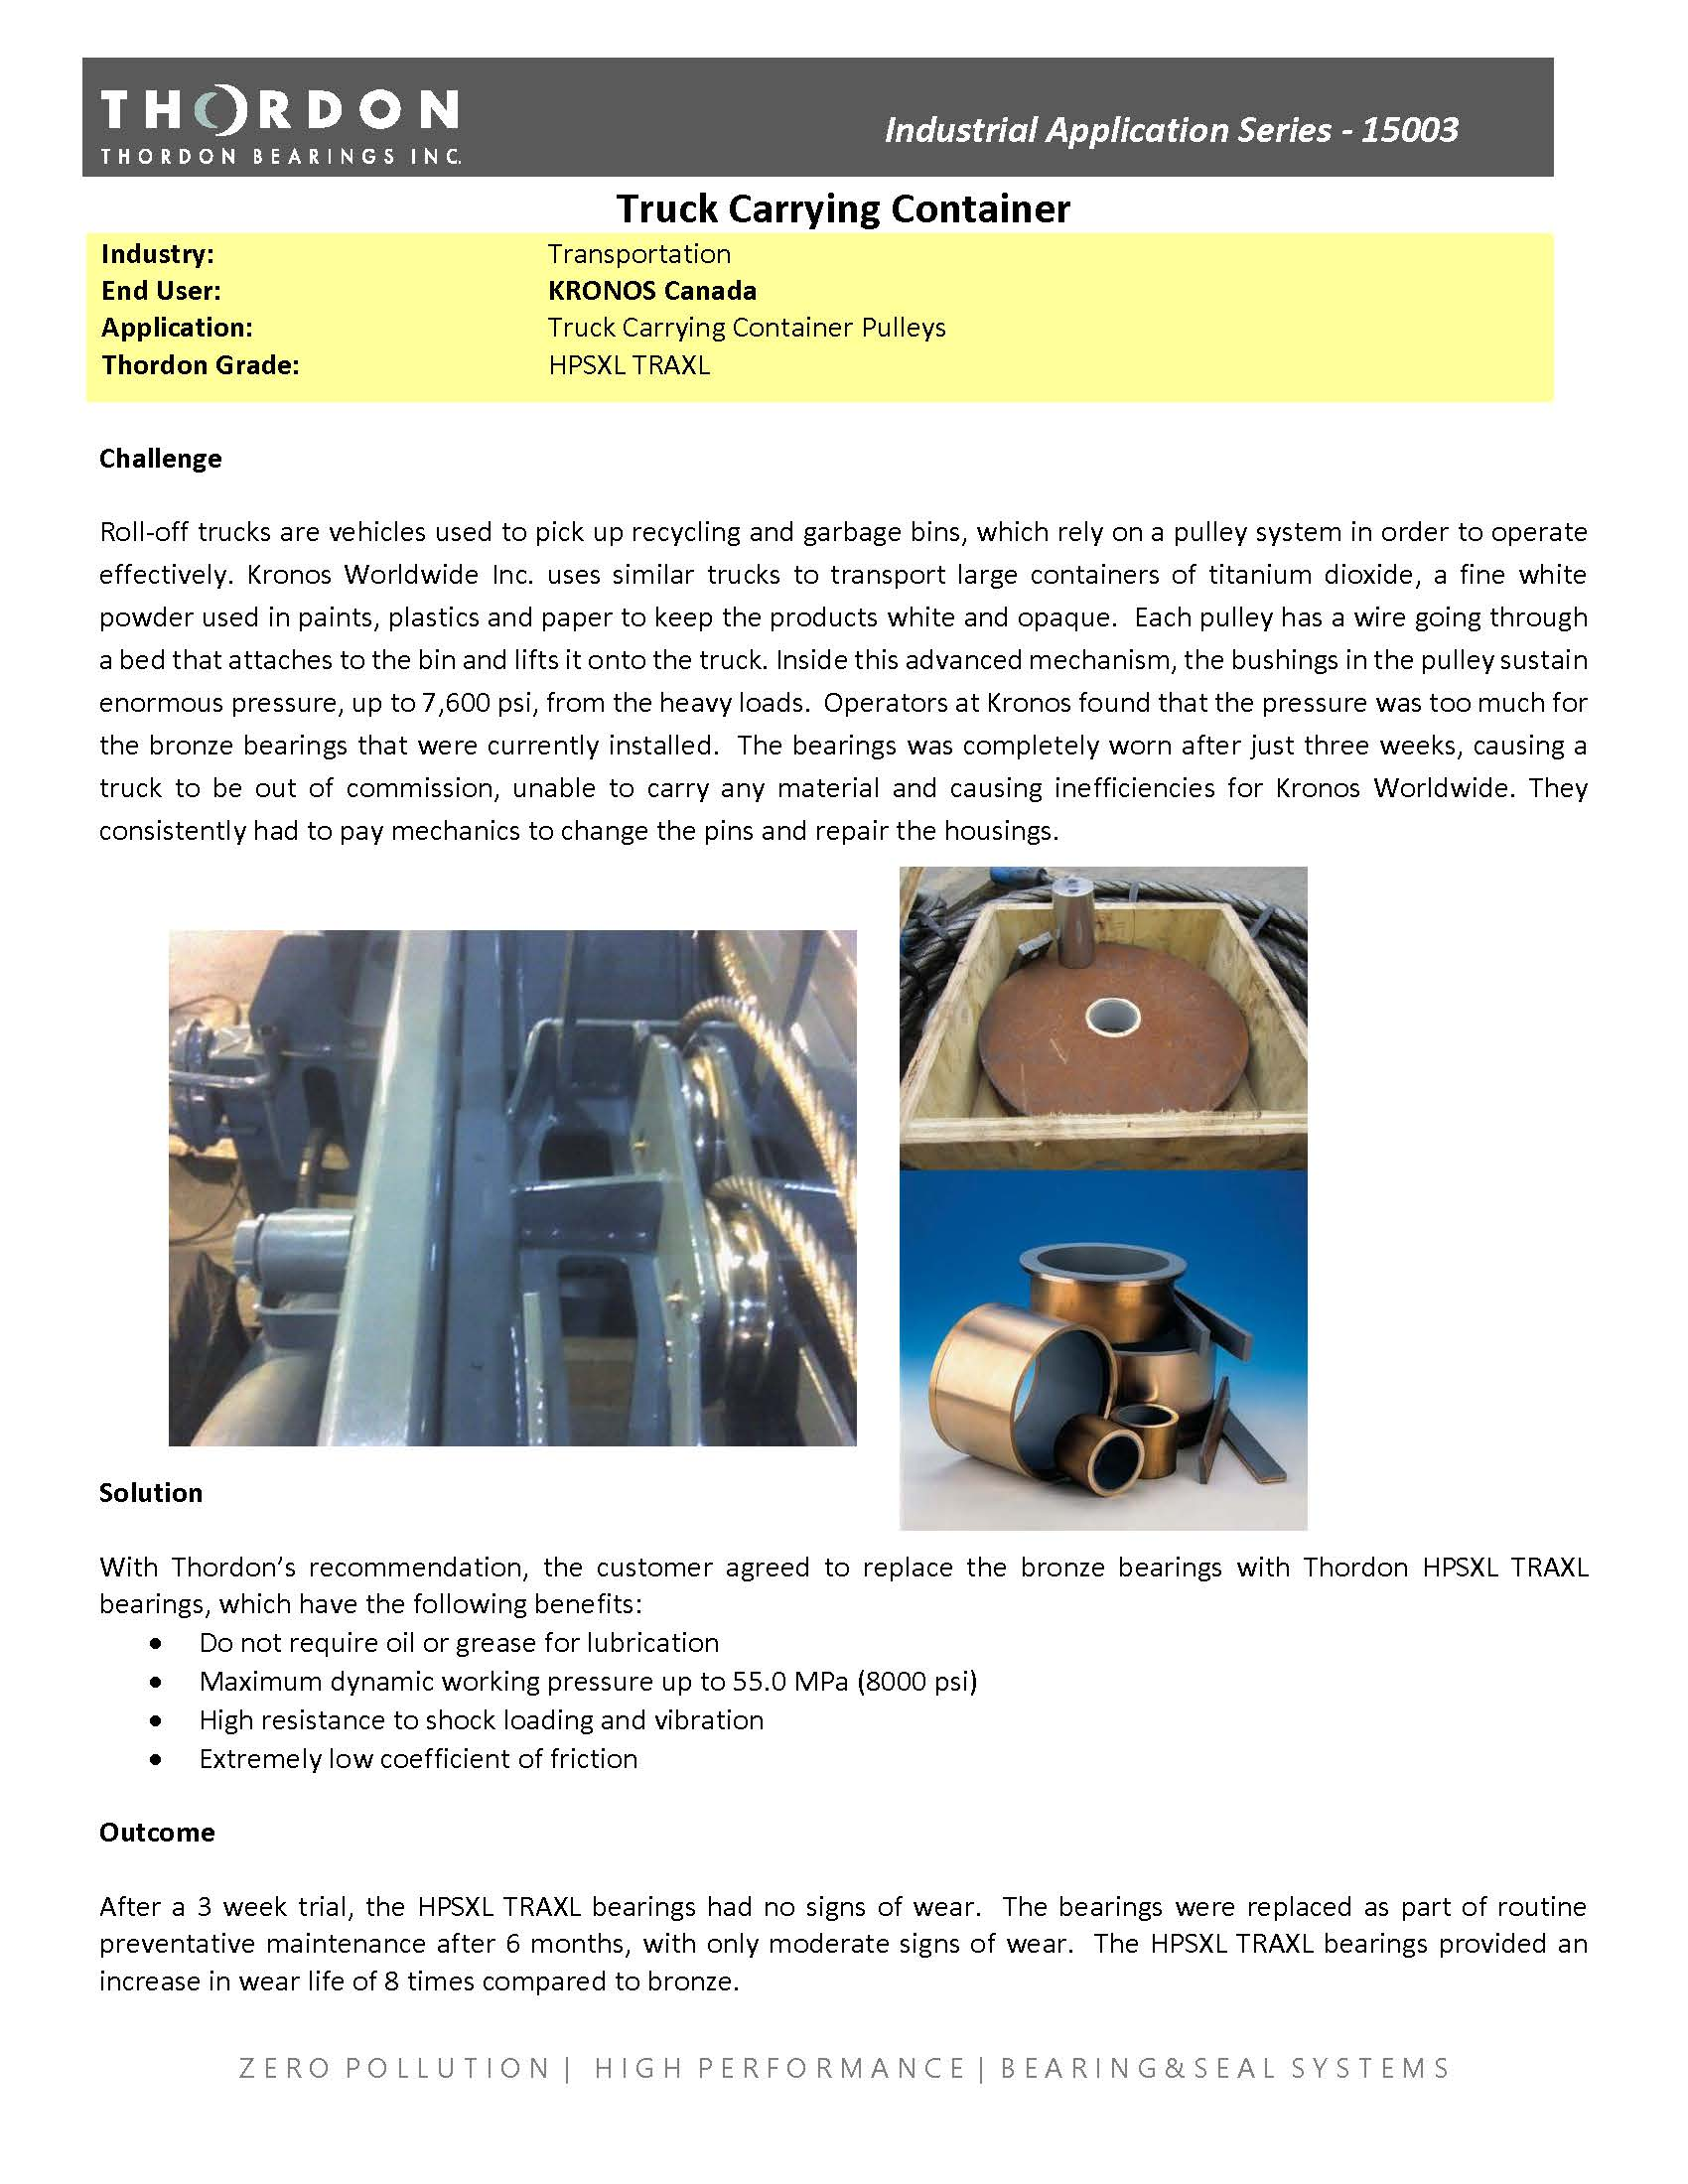 Truck Carrying Container Pulleys